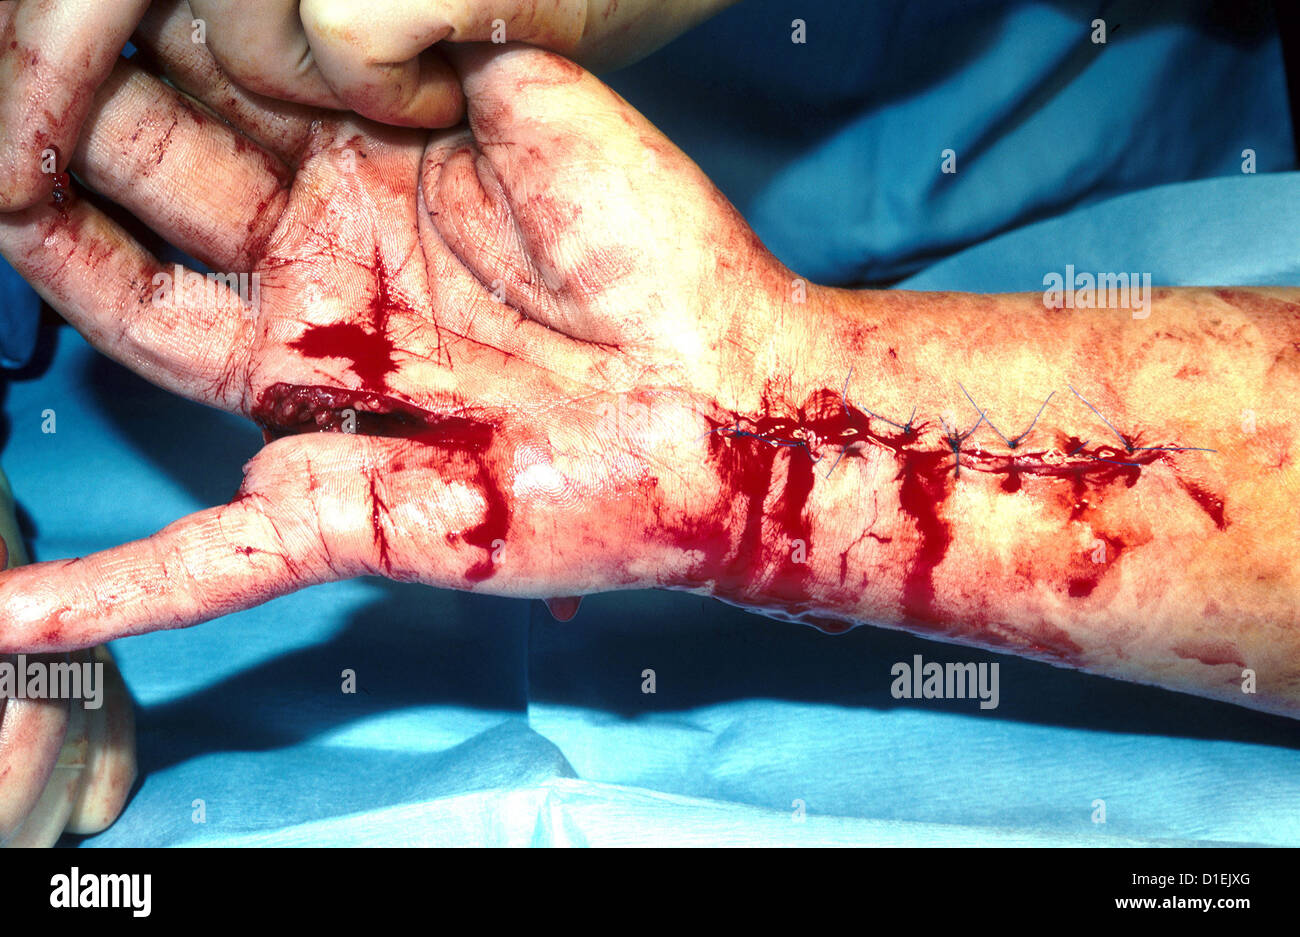 Lacerations of hand and arm. The arm has been sutured. - Stock Image